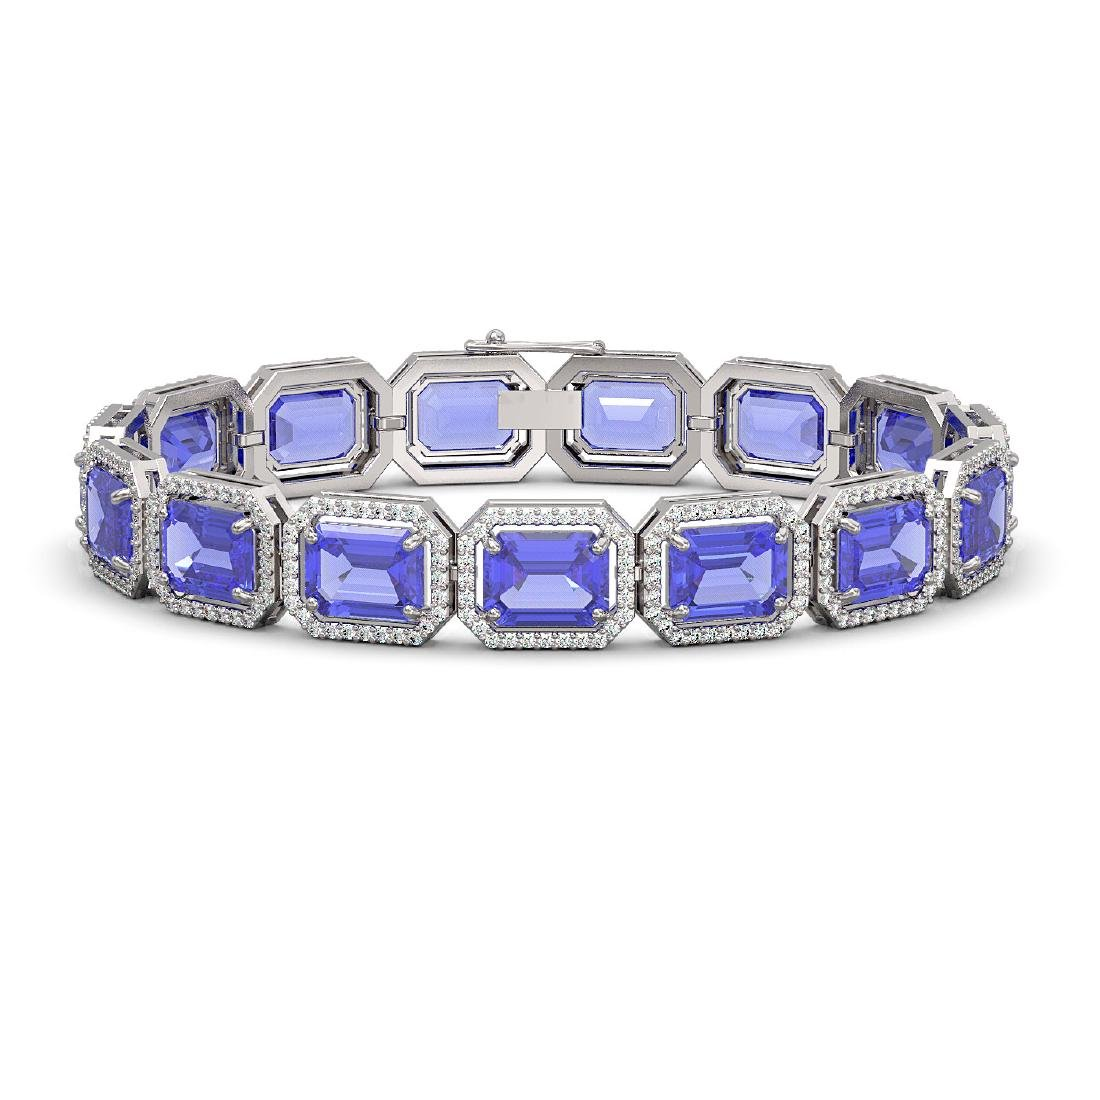 36.37 CTW Tanzanite & Diamond Halo Bracelet 10K White